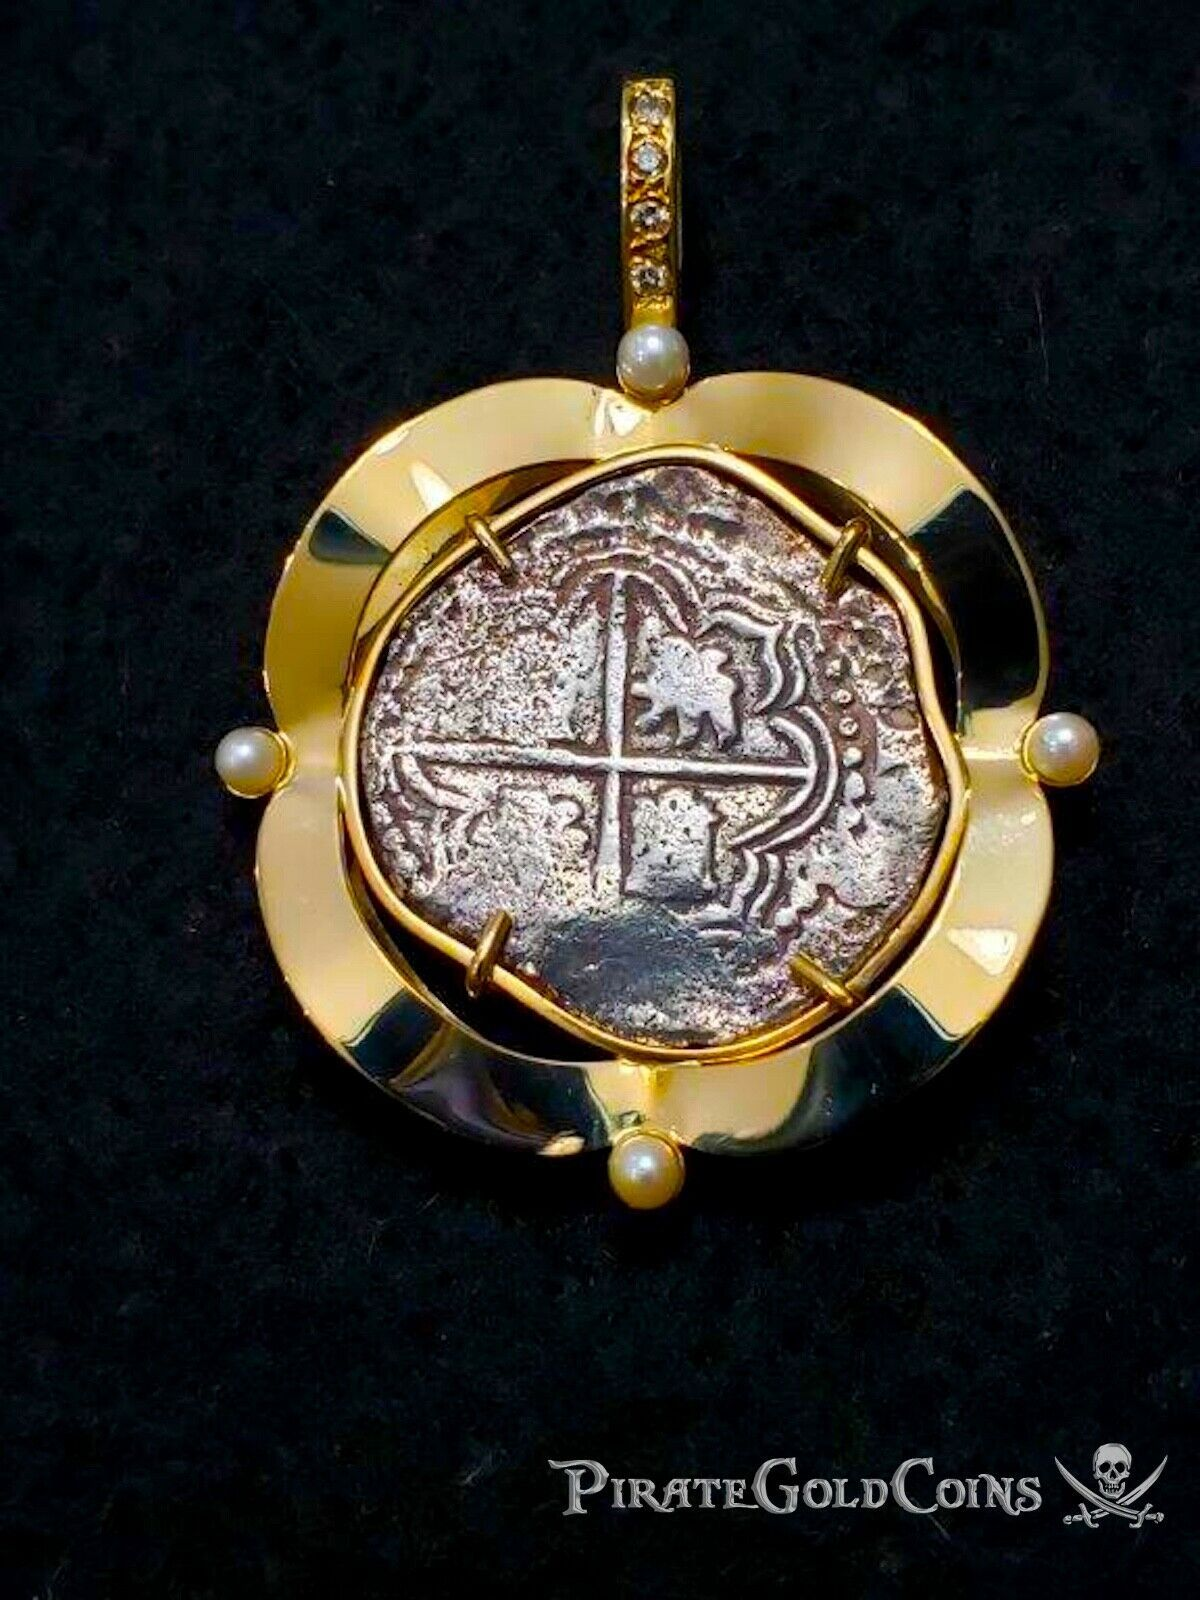 Primary image for ATOCHA 2 REALES DIAMONDS & PEARLS PIRATE GOLD SHIPWRECK COINS PENDANT NECKLACE